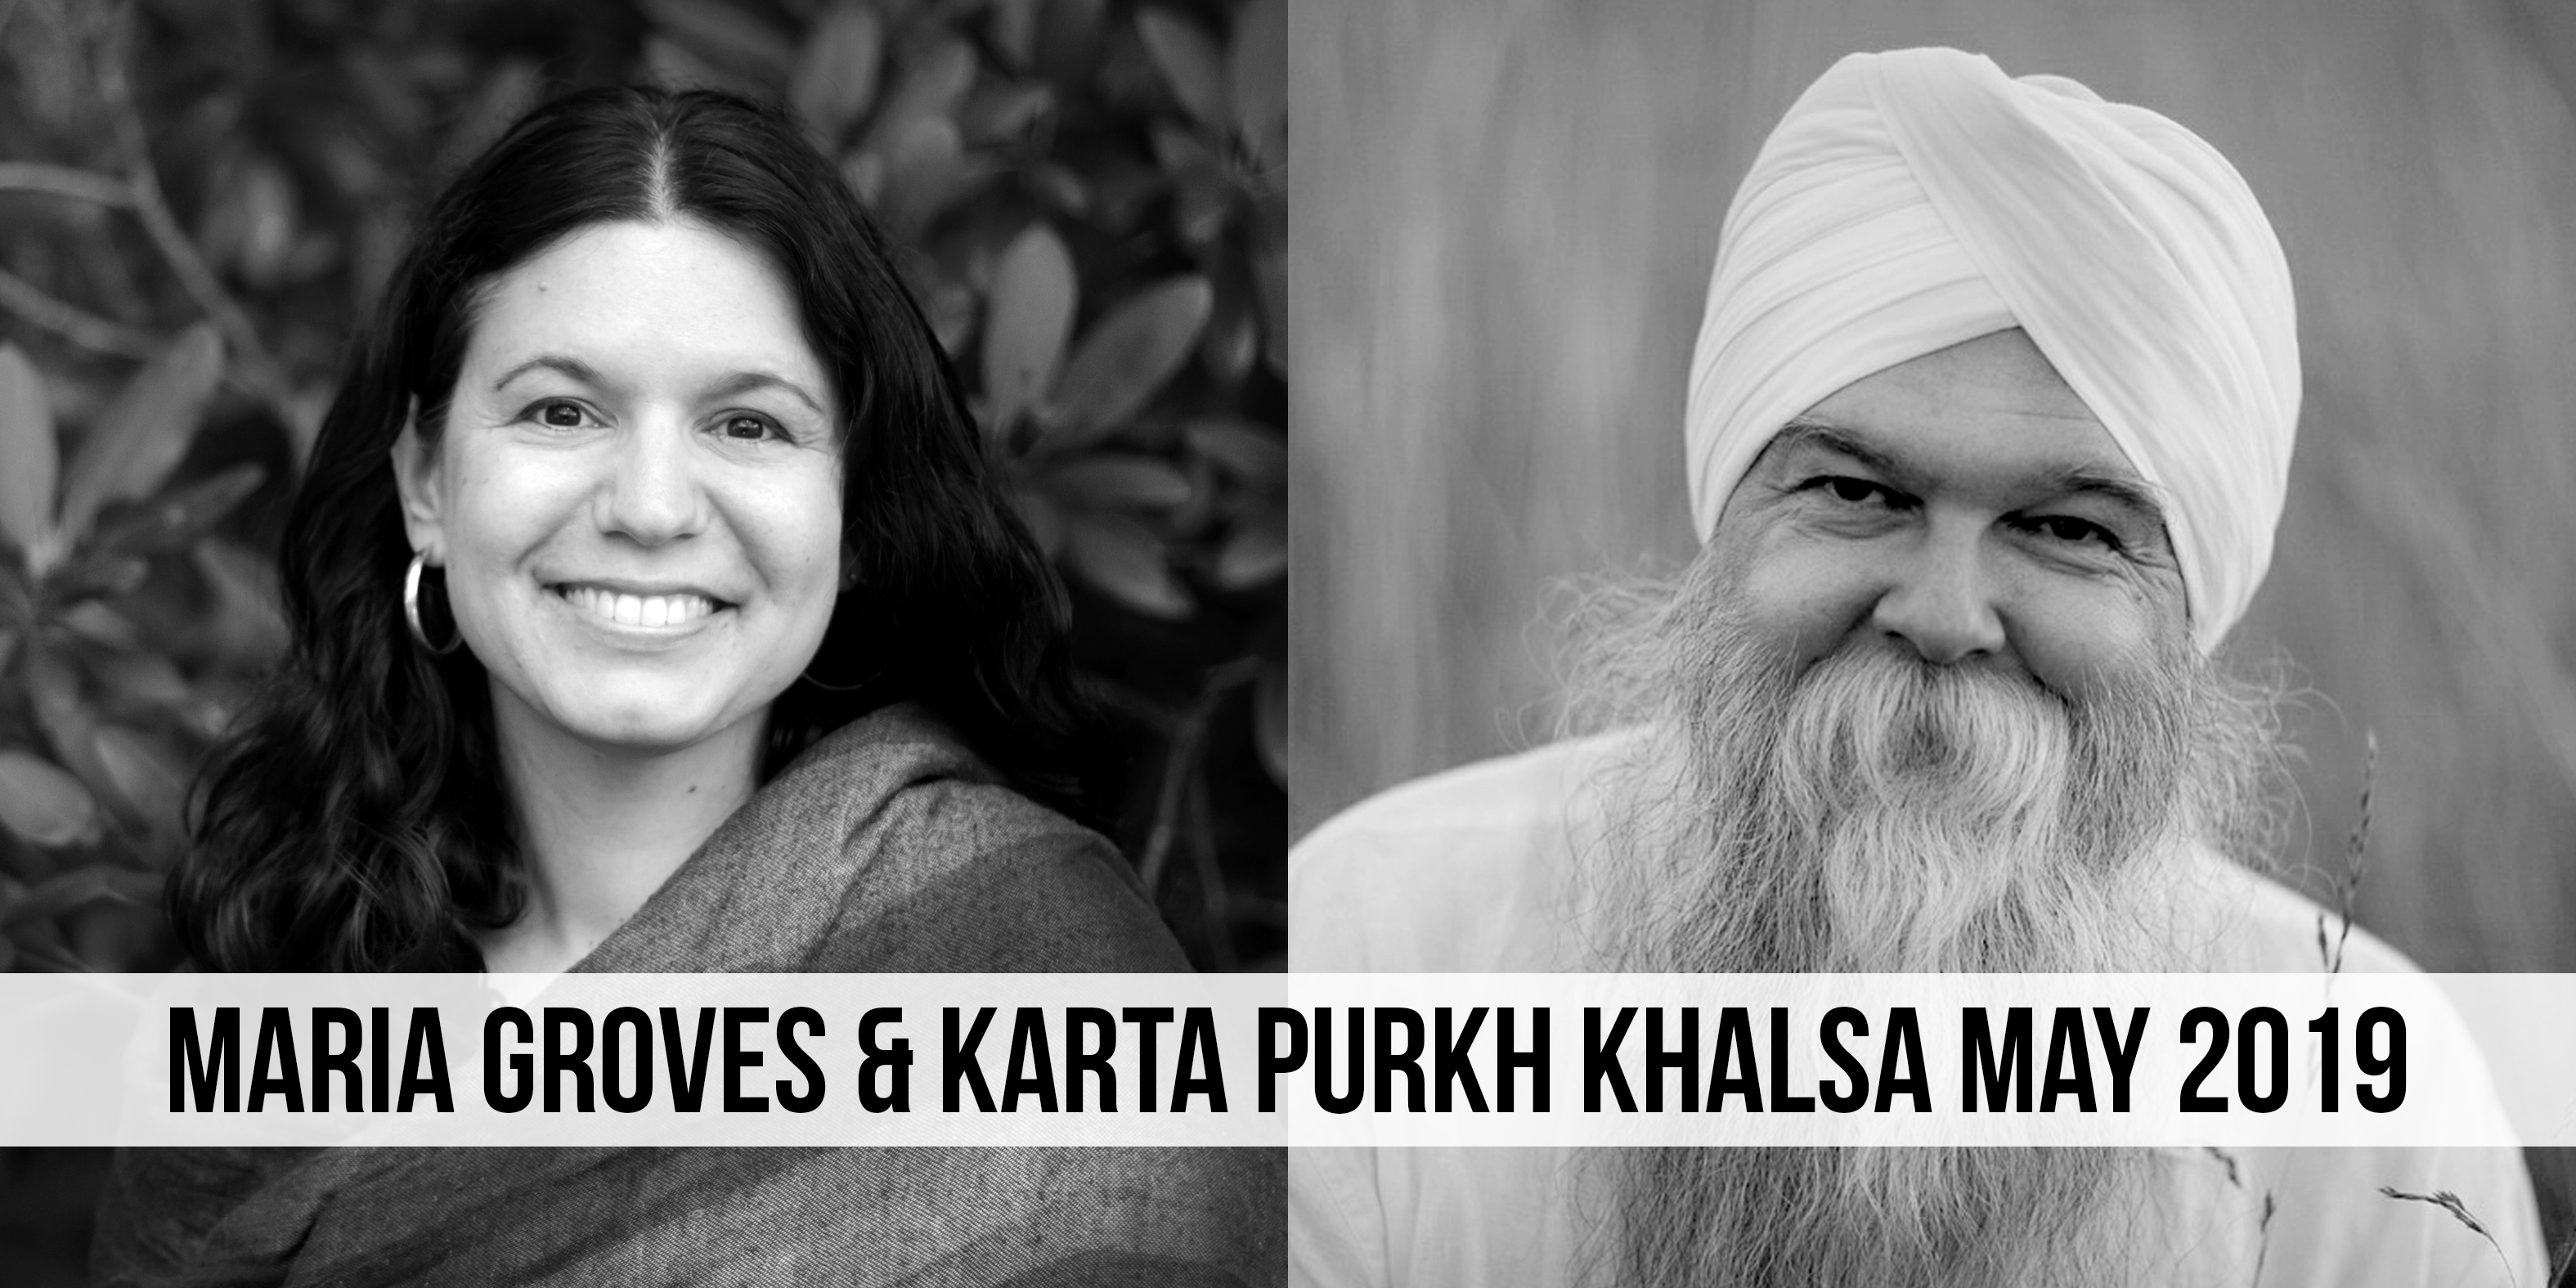 Maria Groves & Karta Purkh Khalsa May 2019